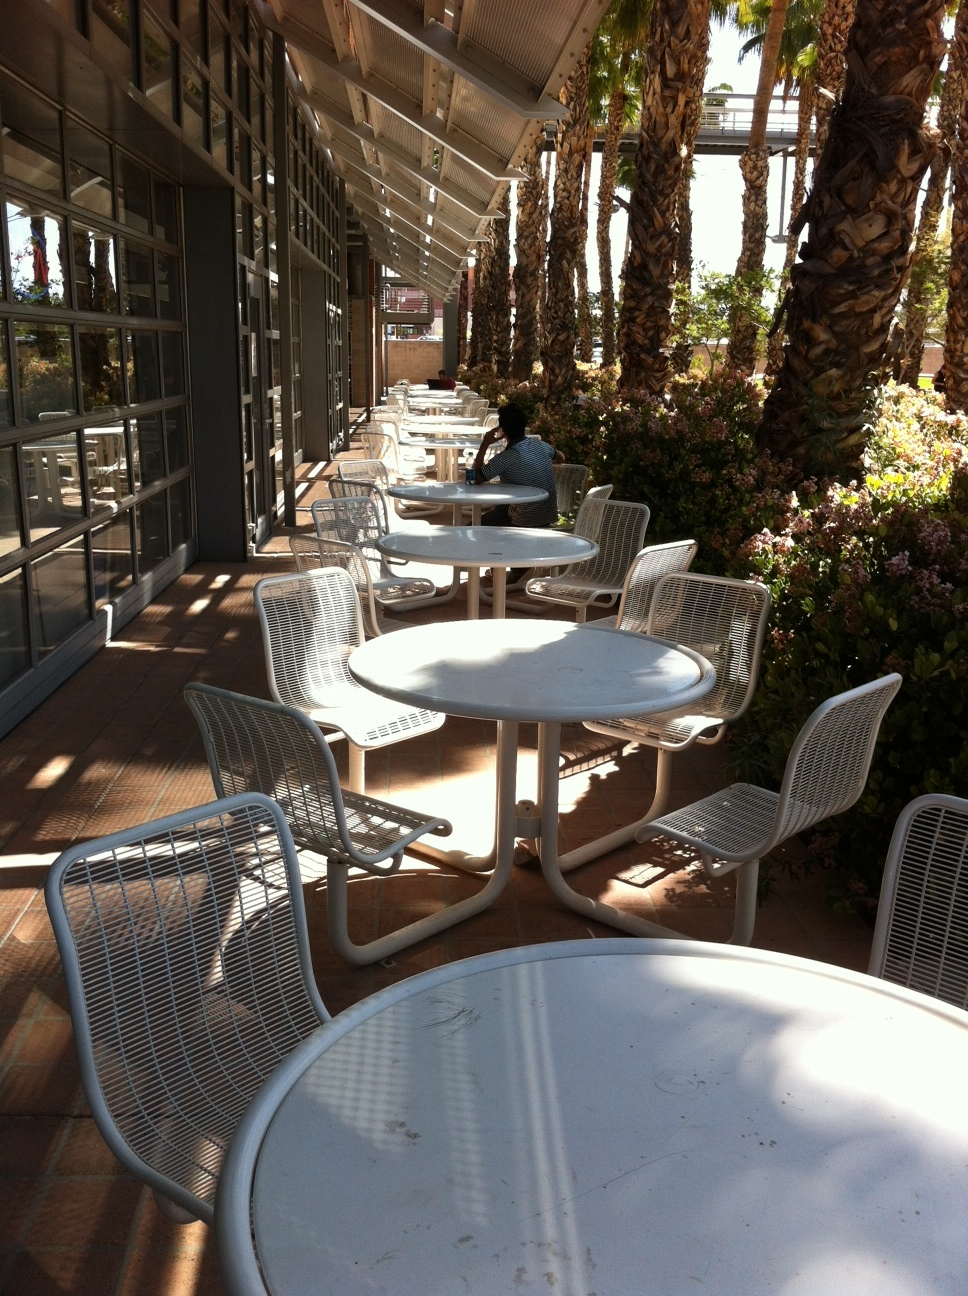 Just one of many resort-like seating areas.